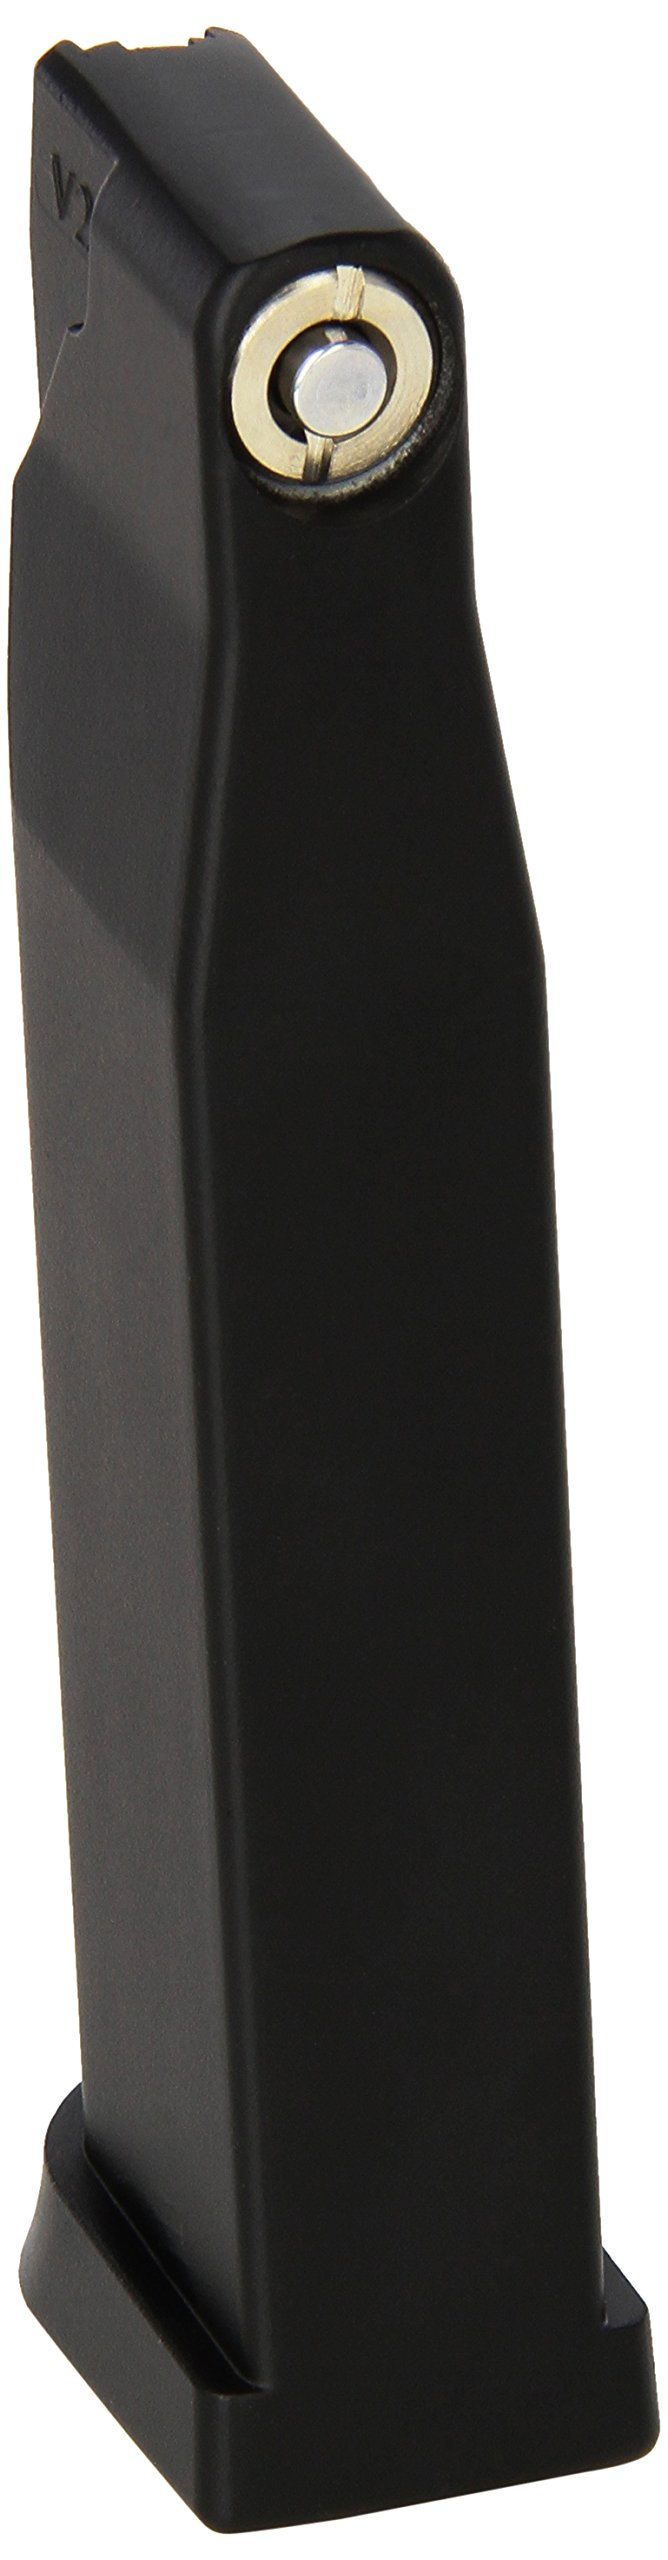 Taurus PT 24/7 CO2 Magazine